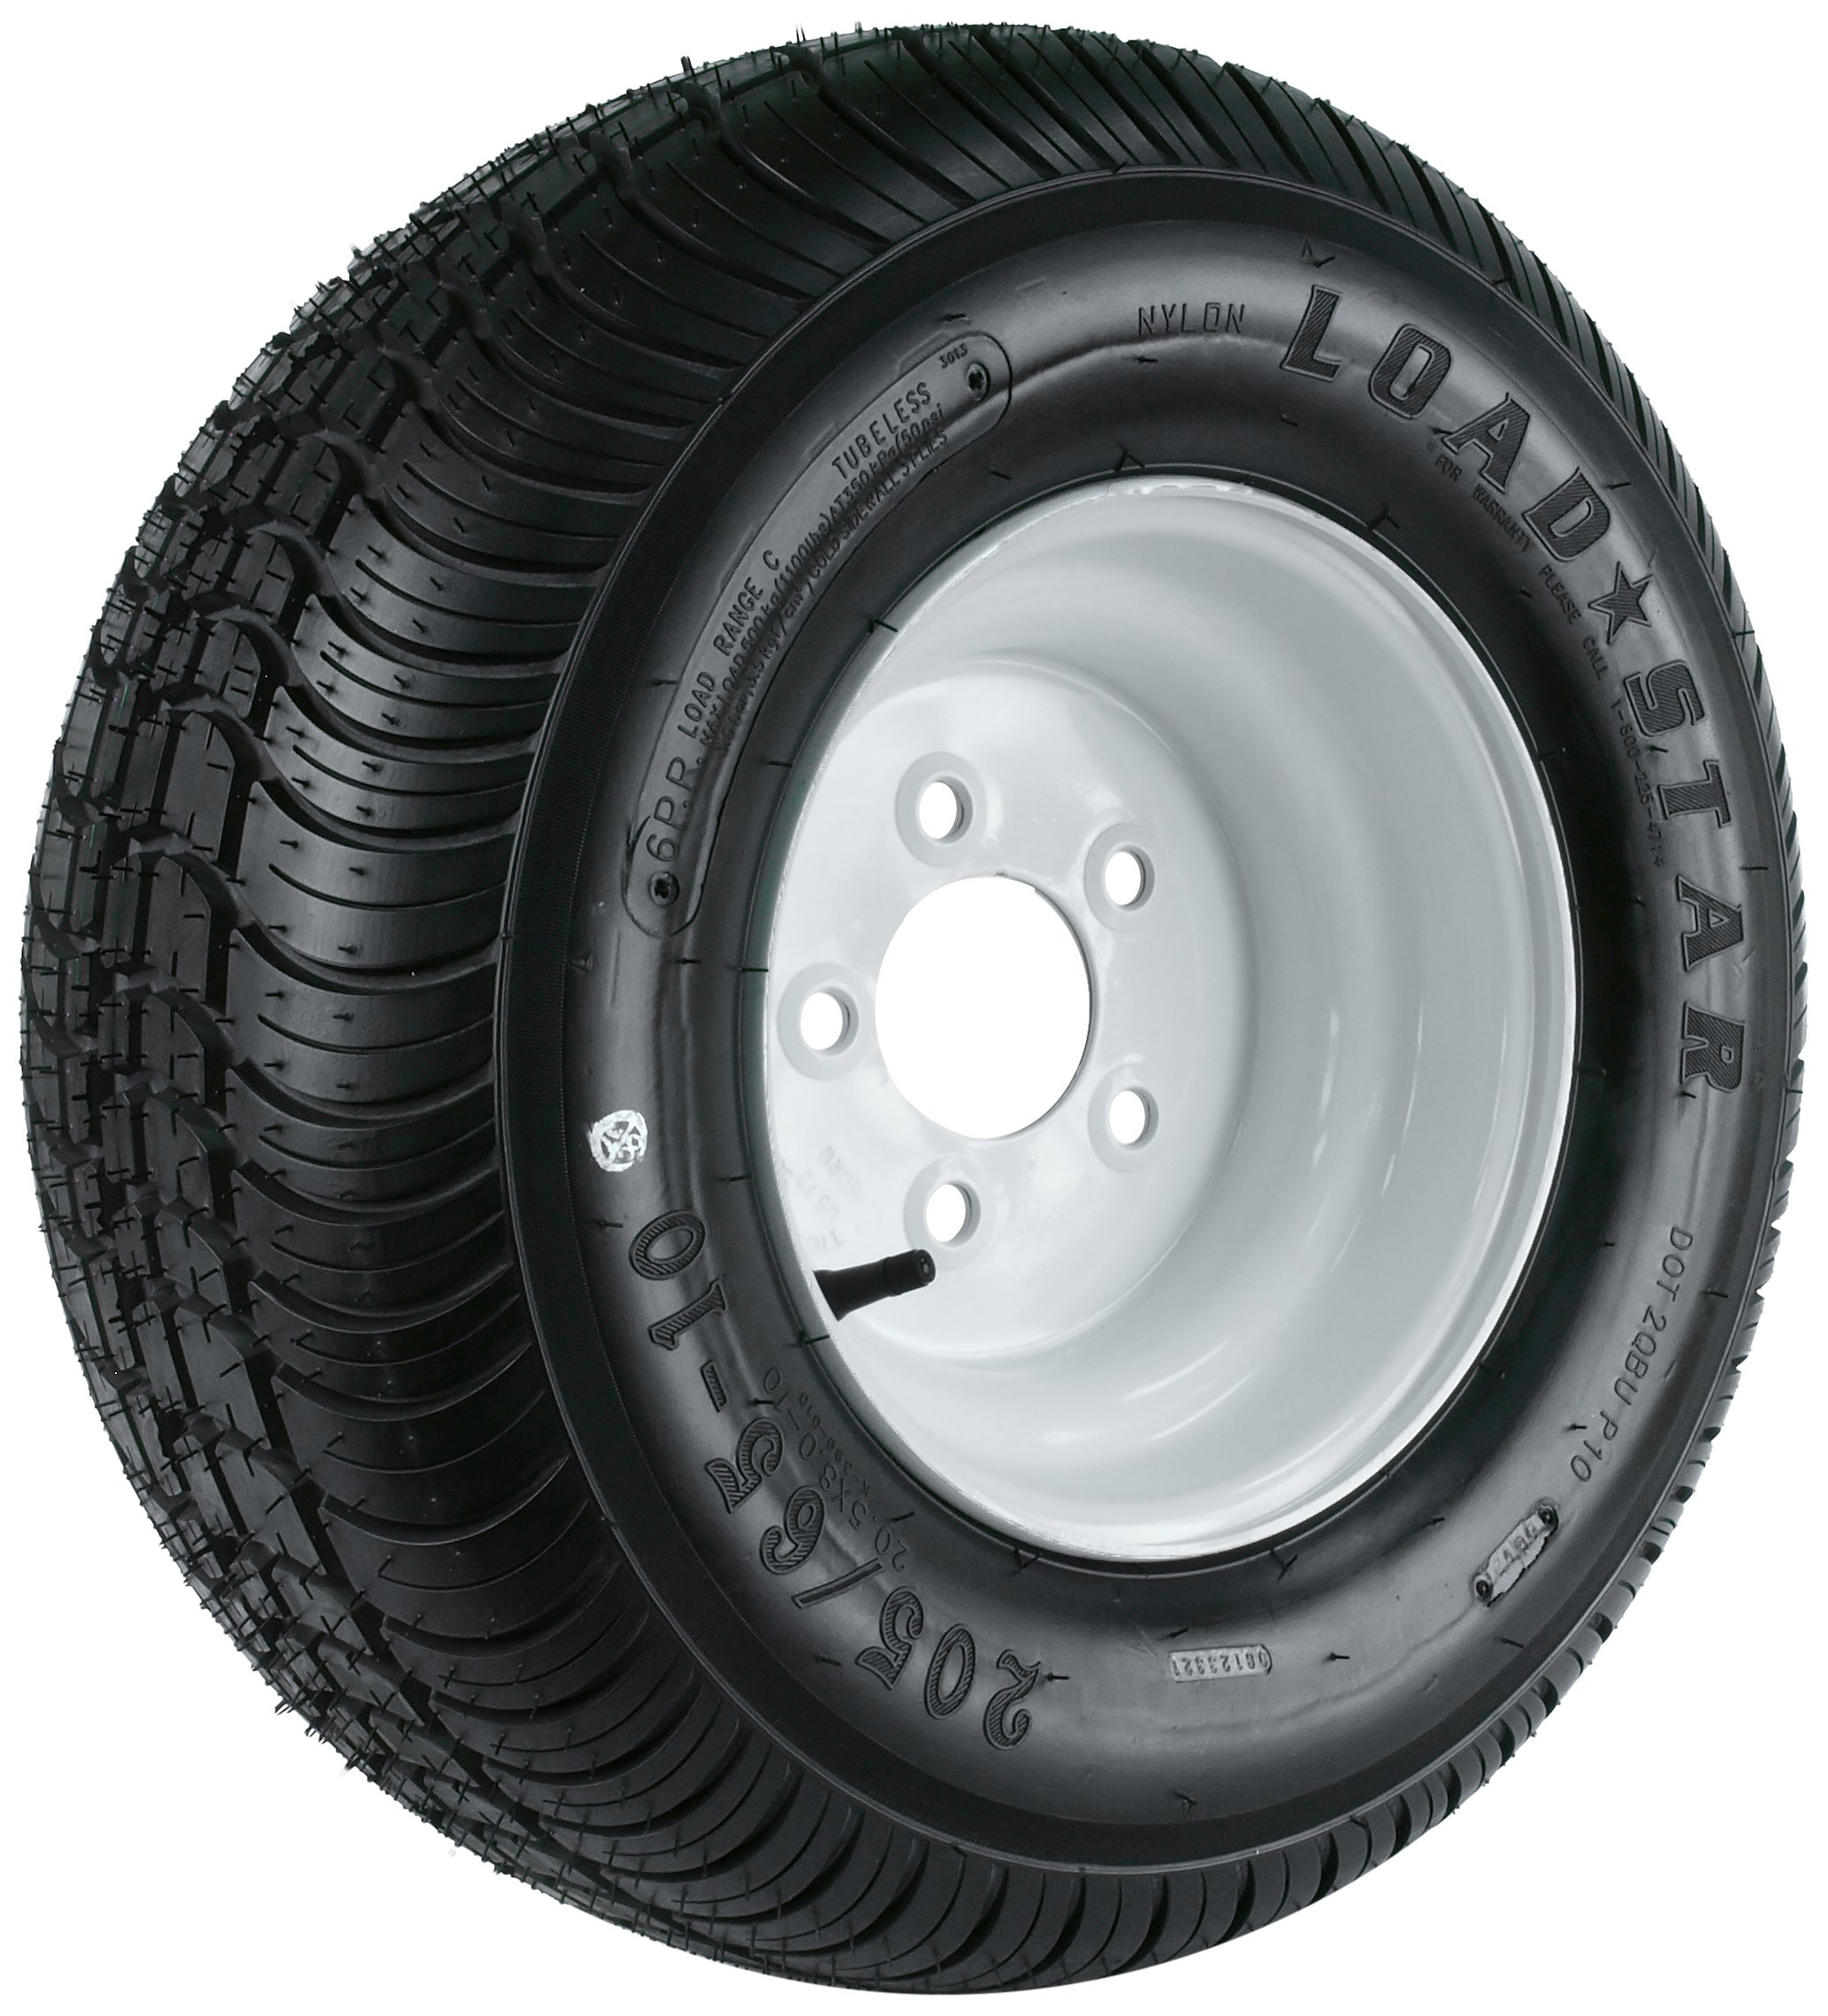 Kenda Loadstar (10x6/5x4.5) Wheel with White Powder-Coat Pinstripe Finish LRC and Trailer Tire Assembly (205/65-10)